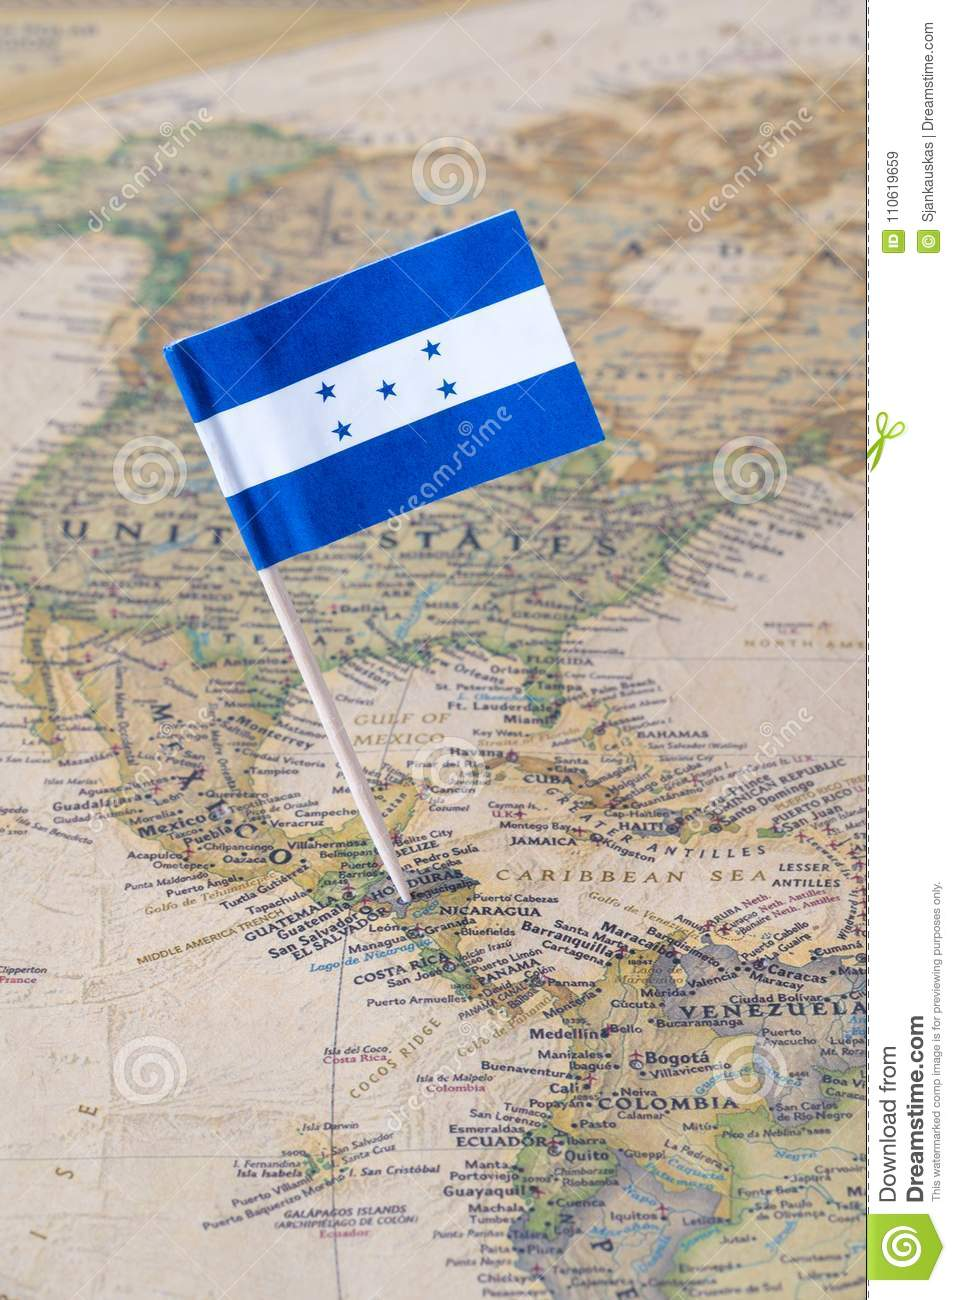 Honduras Flag Pin On A World Map Stock Image - Image of cities ...